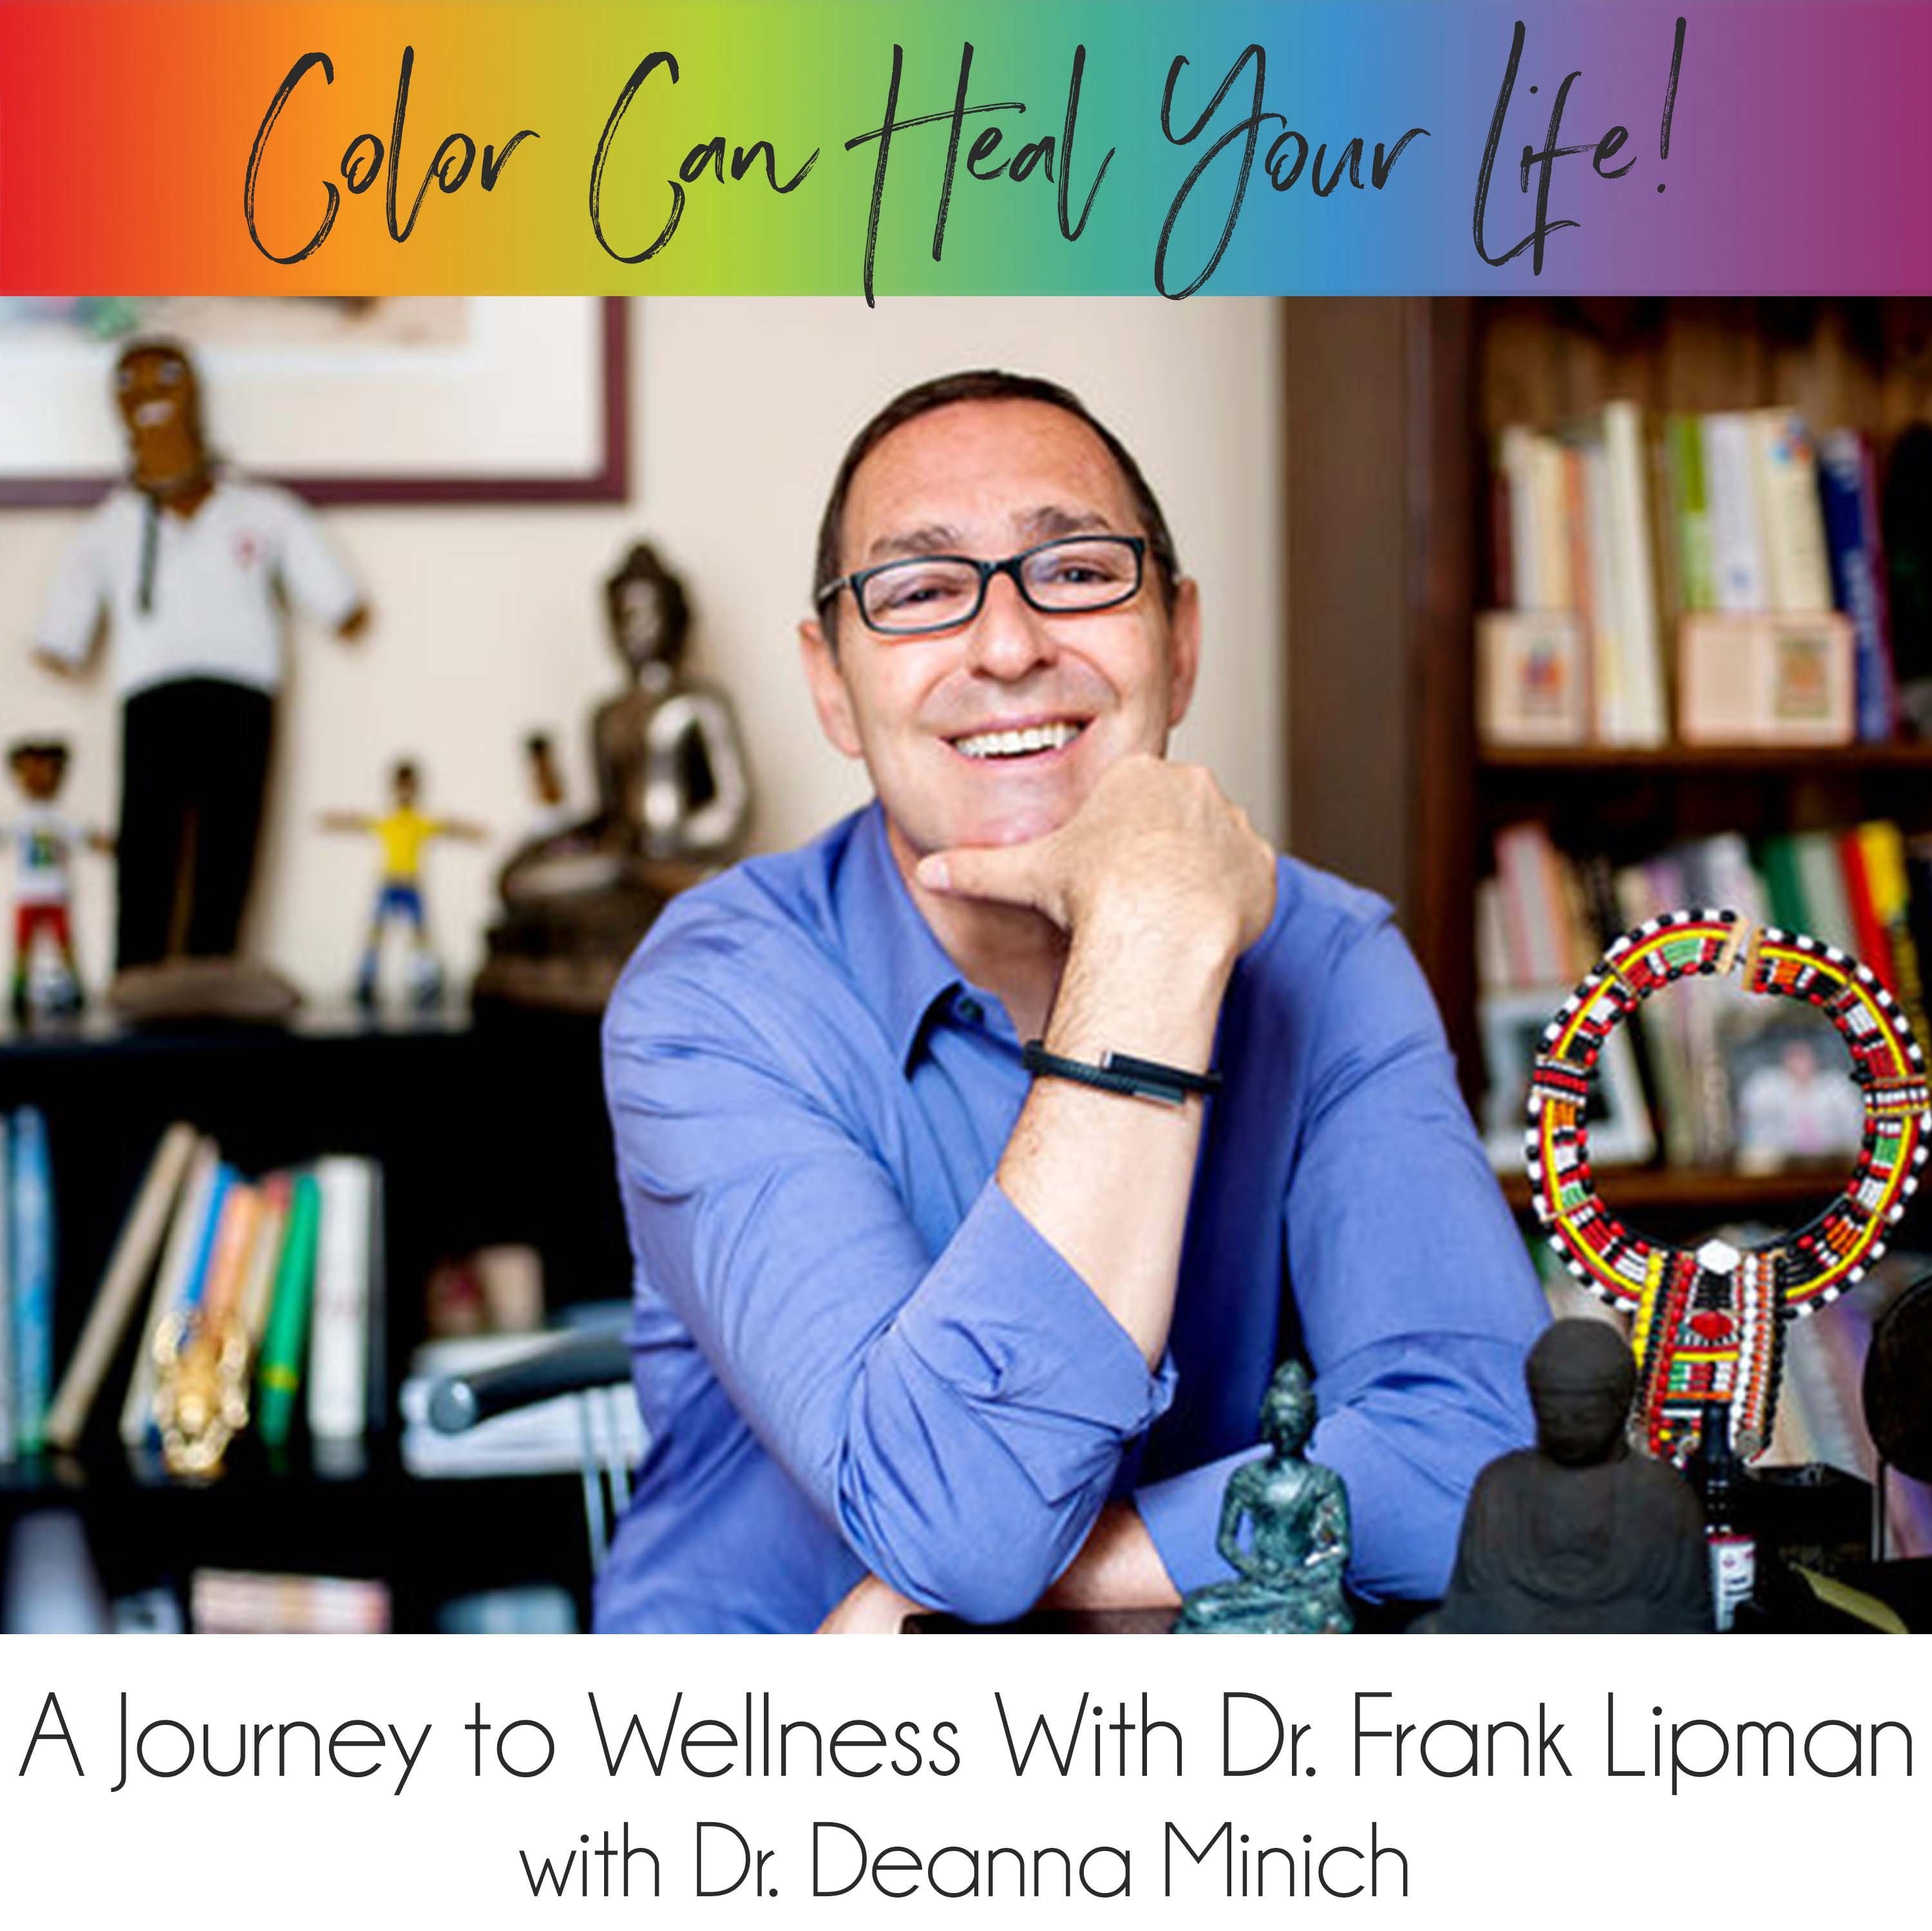 A Journey to Wellness with Dr. Frank Lipman